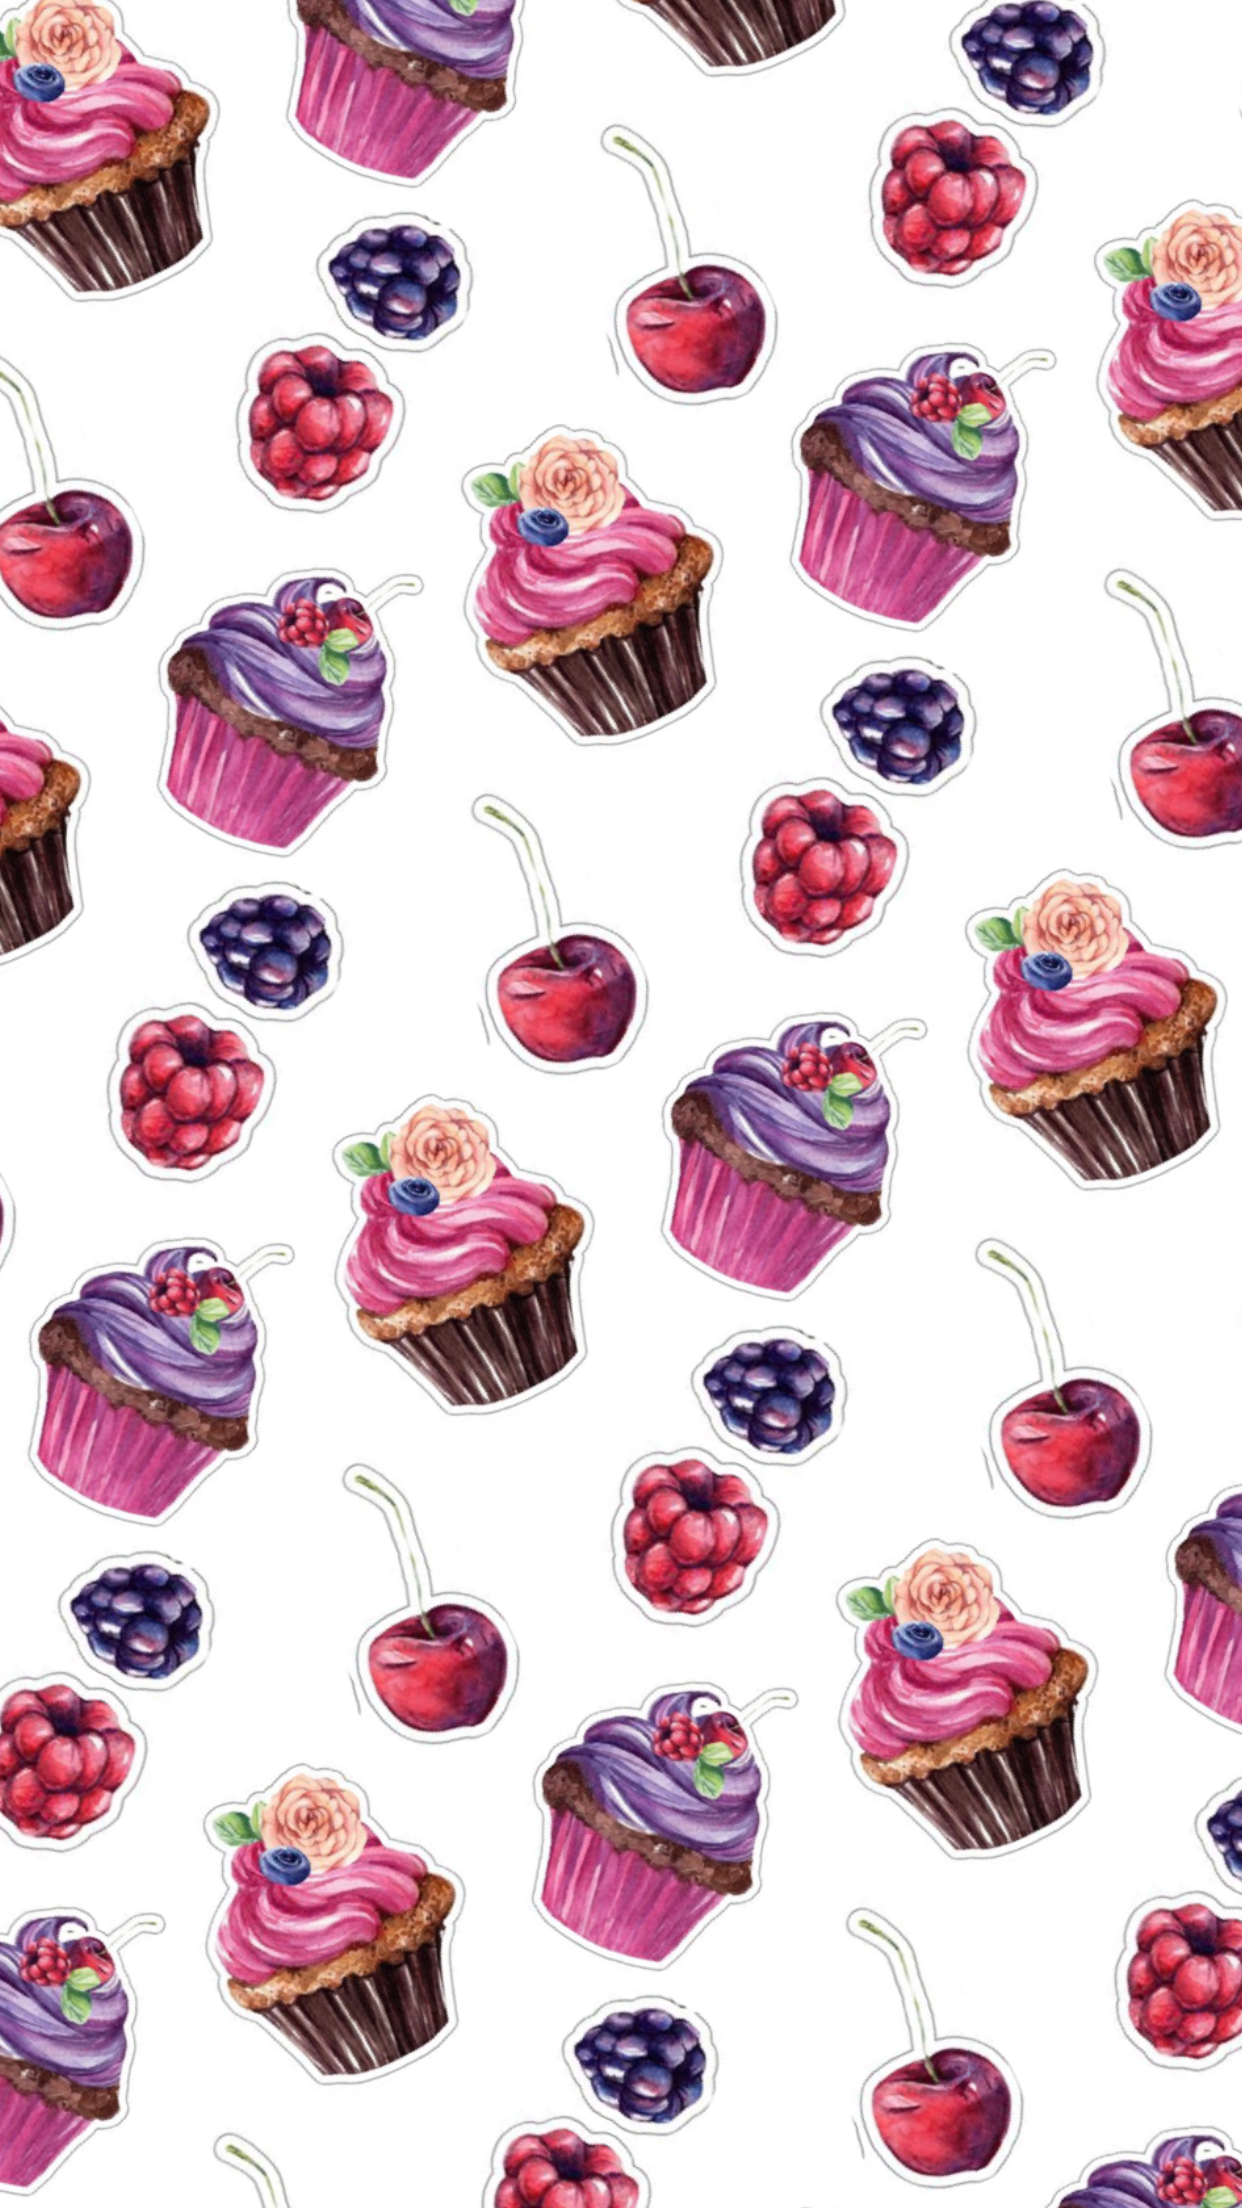 Pin By Roberta Nardin On Wallpapers Cupcakes Wallpaper Iphone Wallpaper Wallpaper Iphone Cute